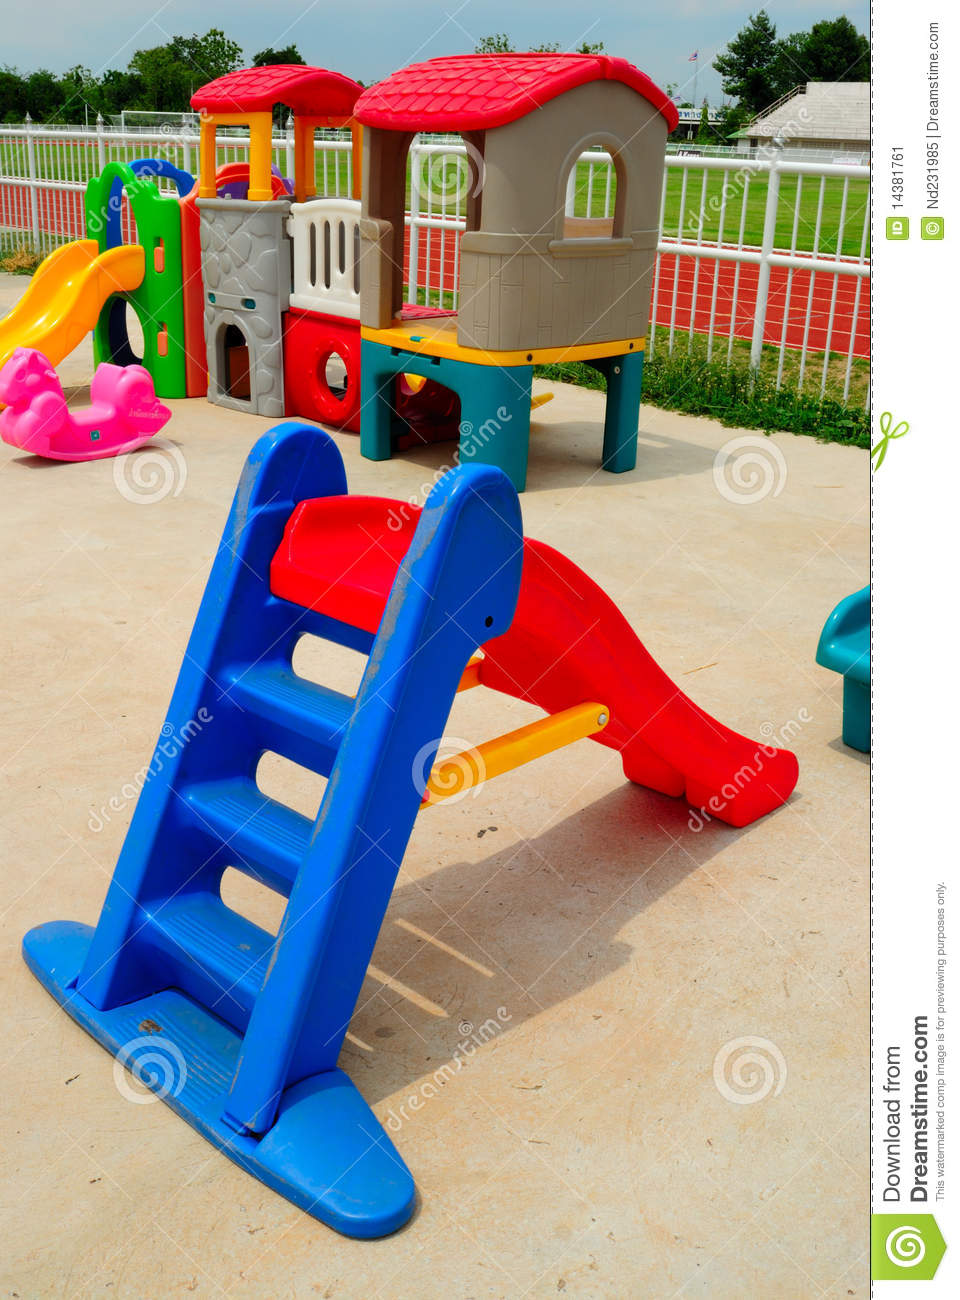 Outdoor Toys For Toddlers And Preschoolers : Outdoor toys for children stock image of